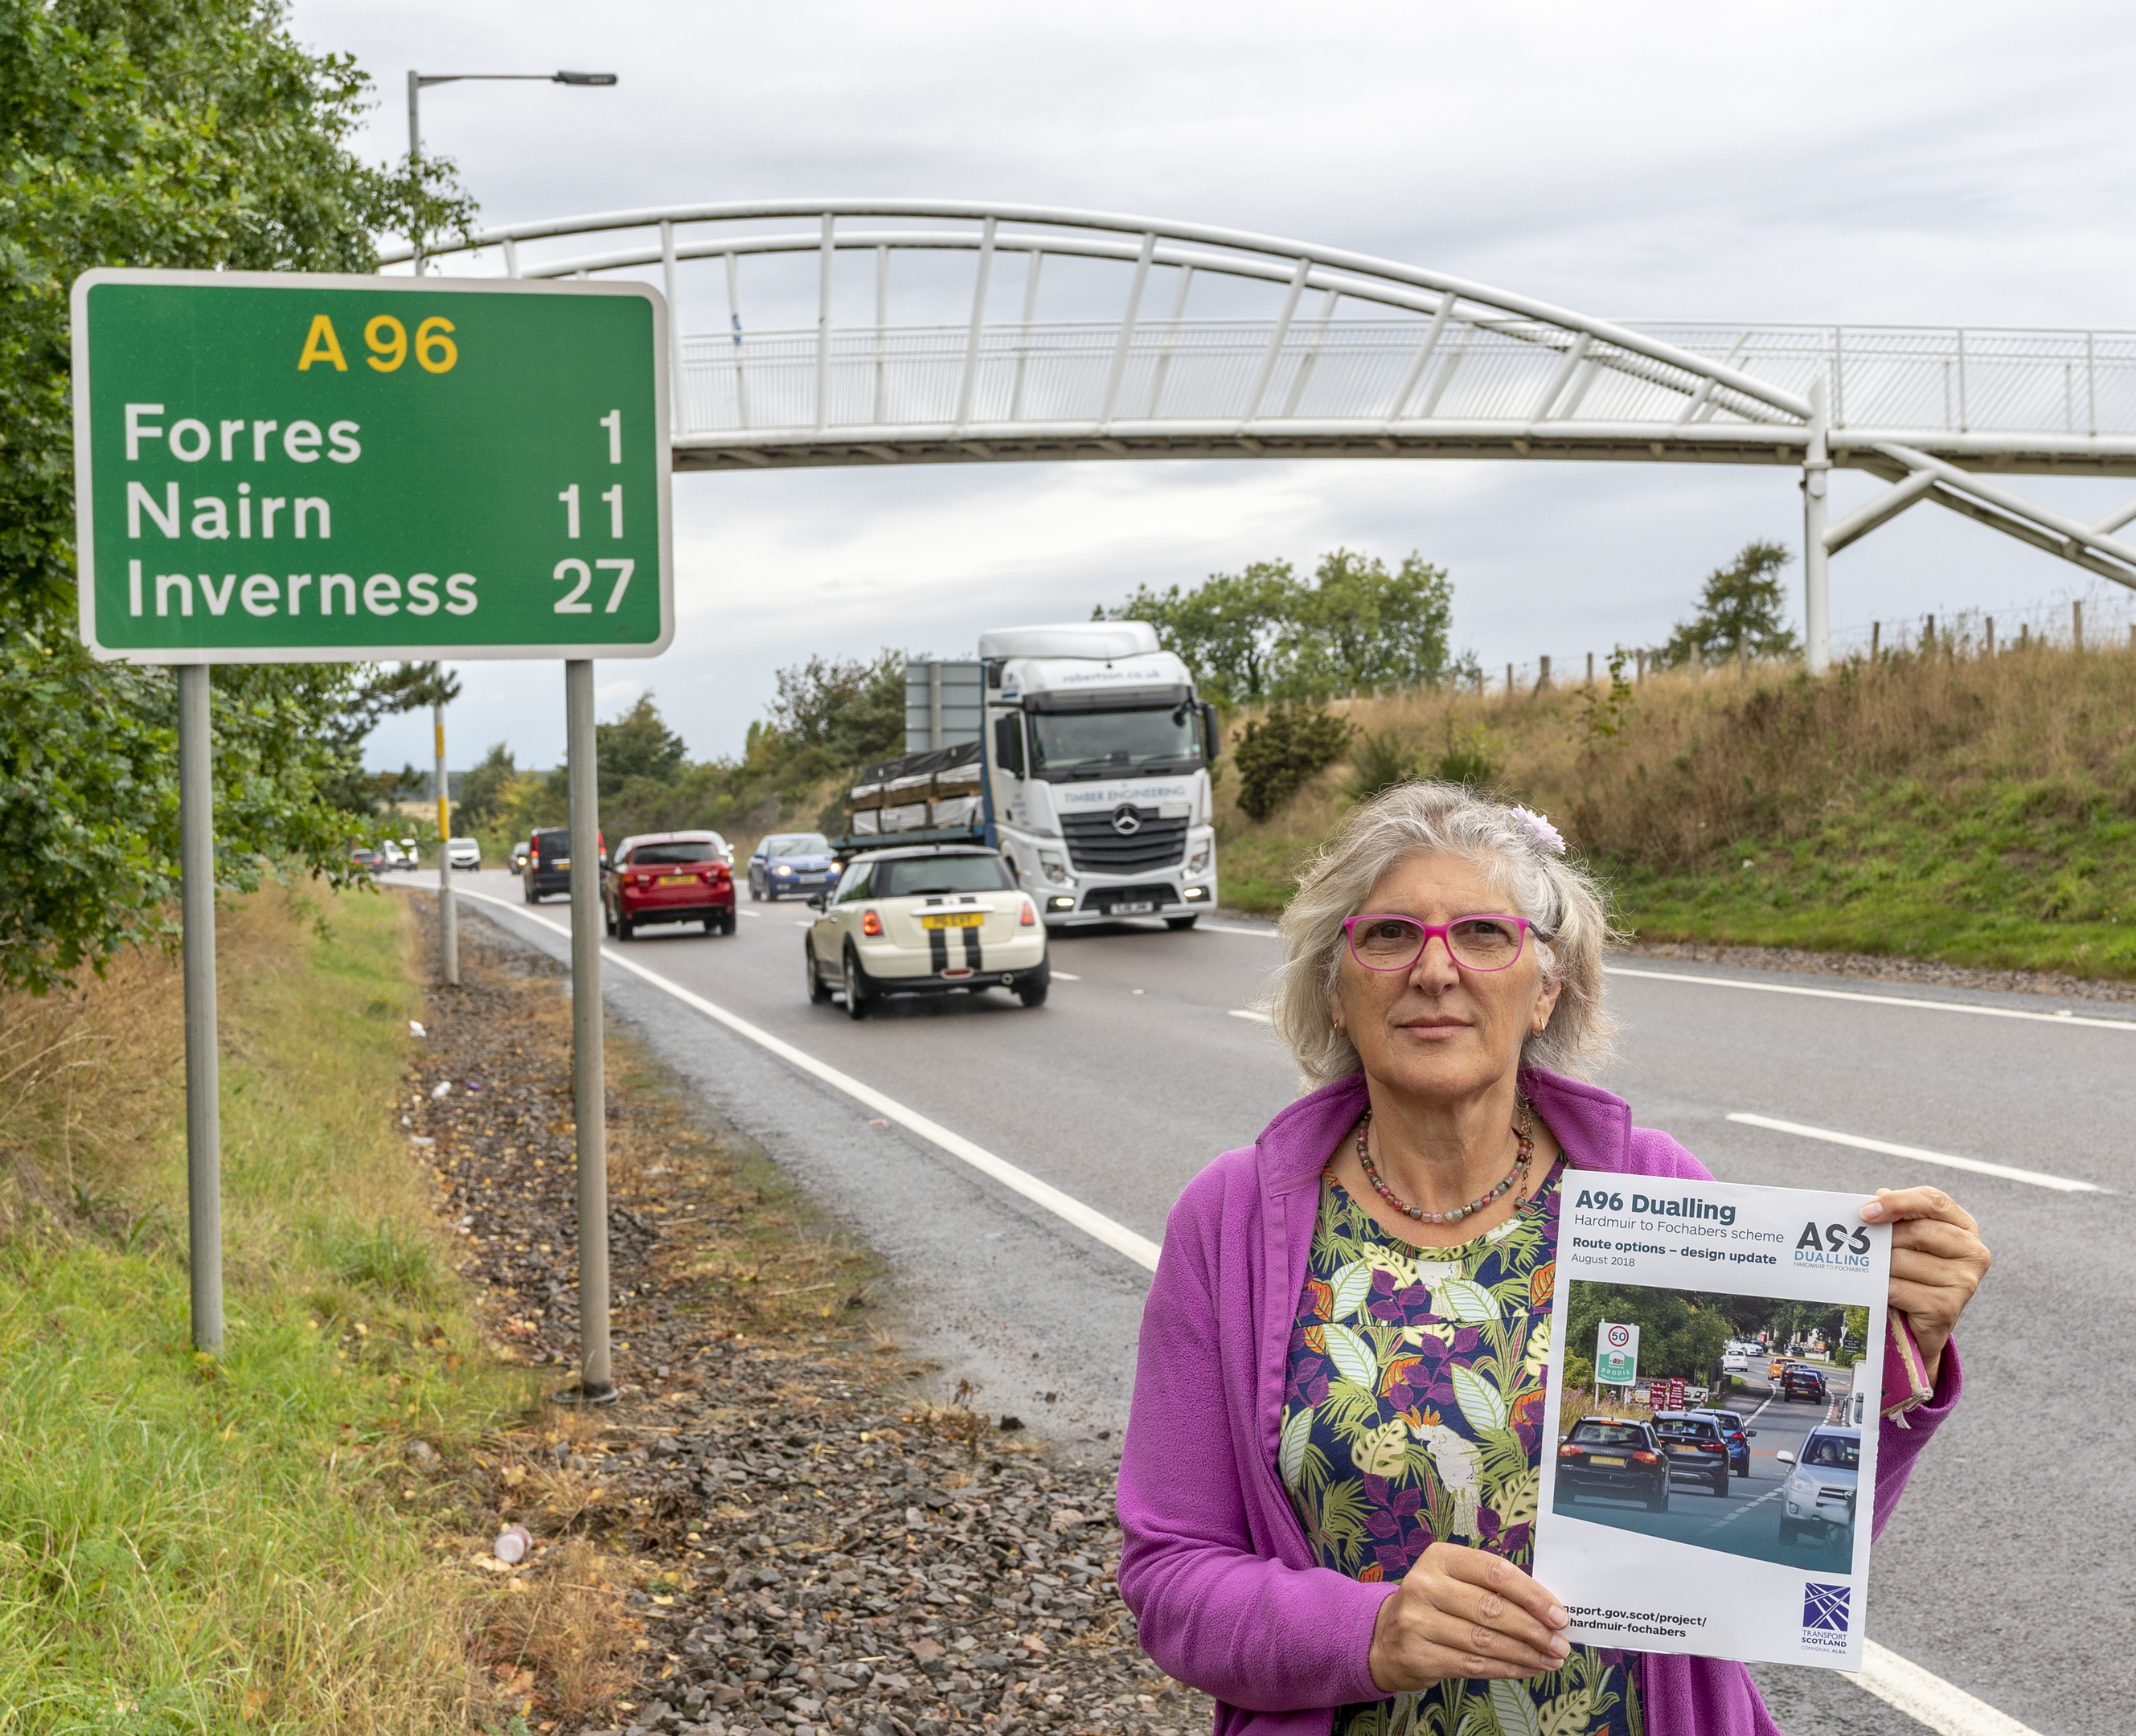 Susie Minto of the Forres A96 Community Group.